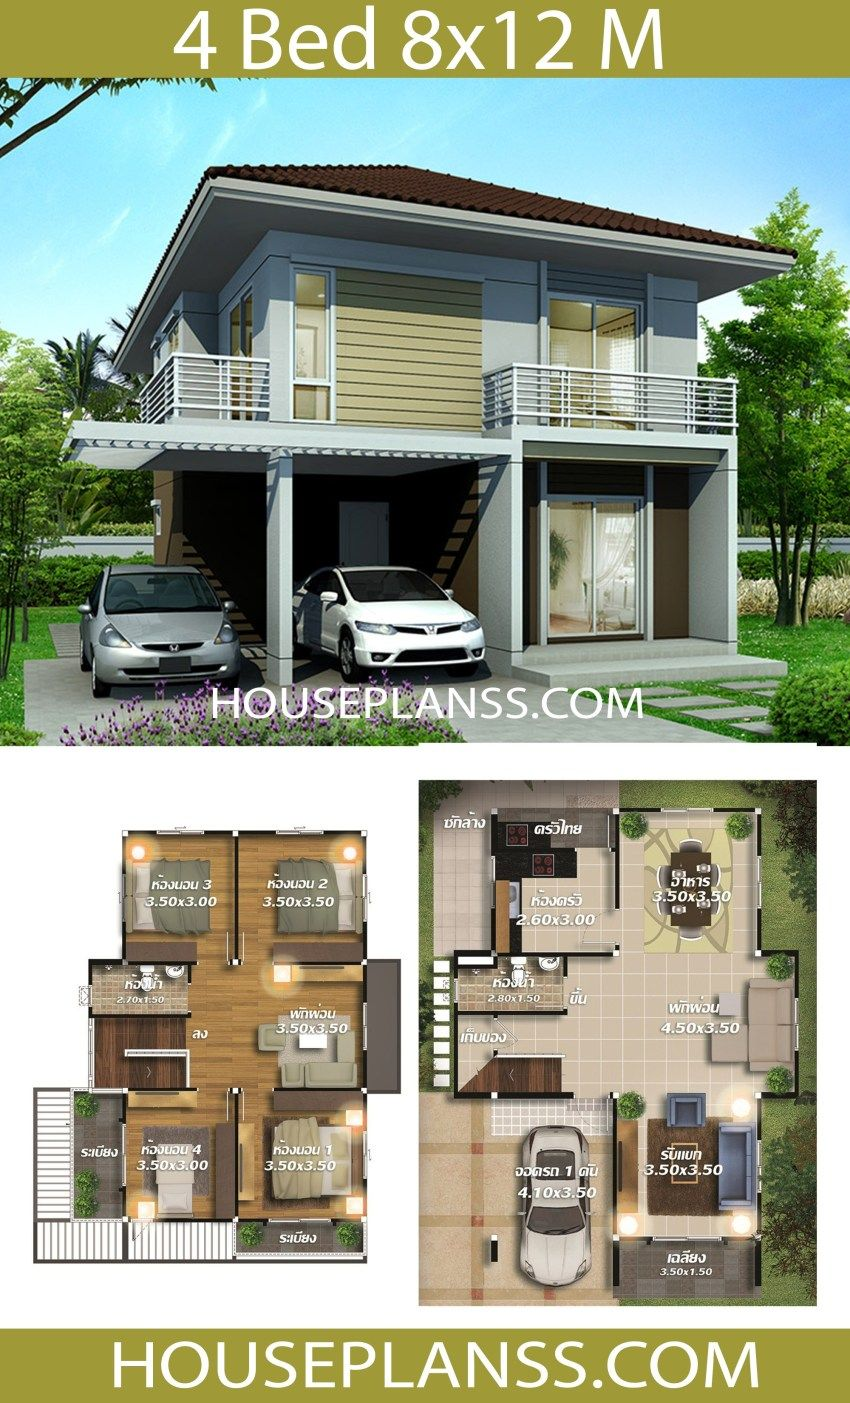 House Plans 8x12 With 4 Bedrooms House Plans 3d House Plans Home Layout Design House Layouts